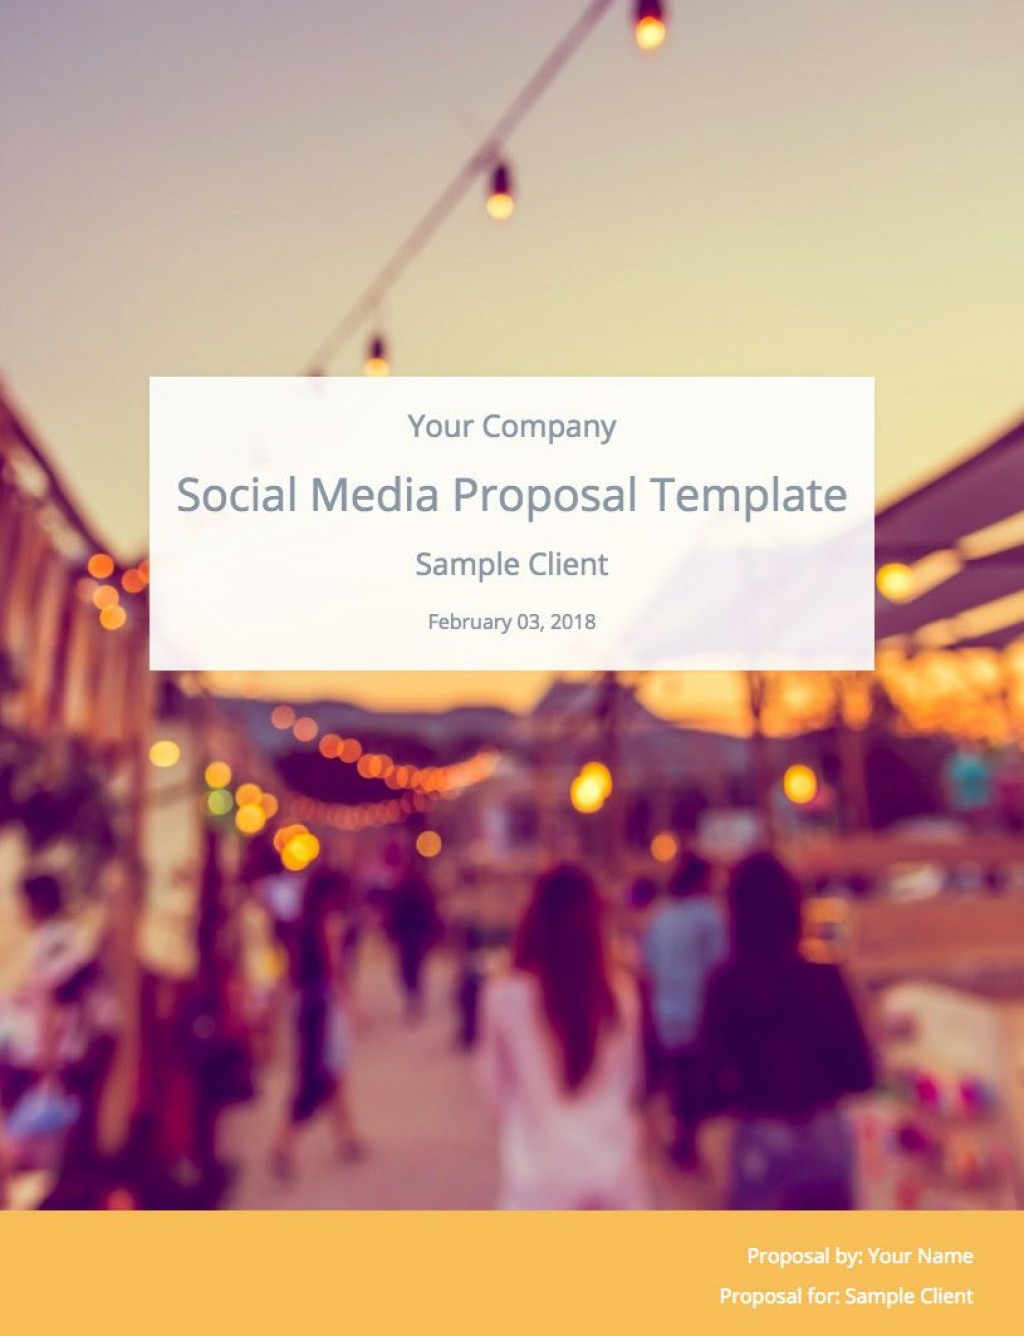 006 Striking Social Media Proposal Format High Resolution  Marketing Example PlanLarge